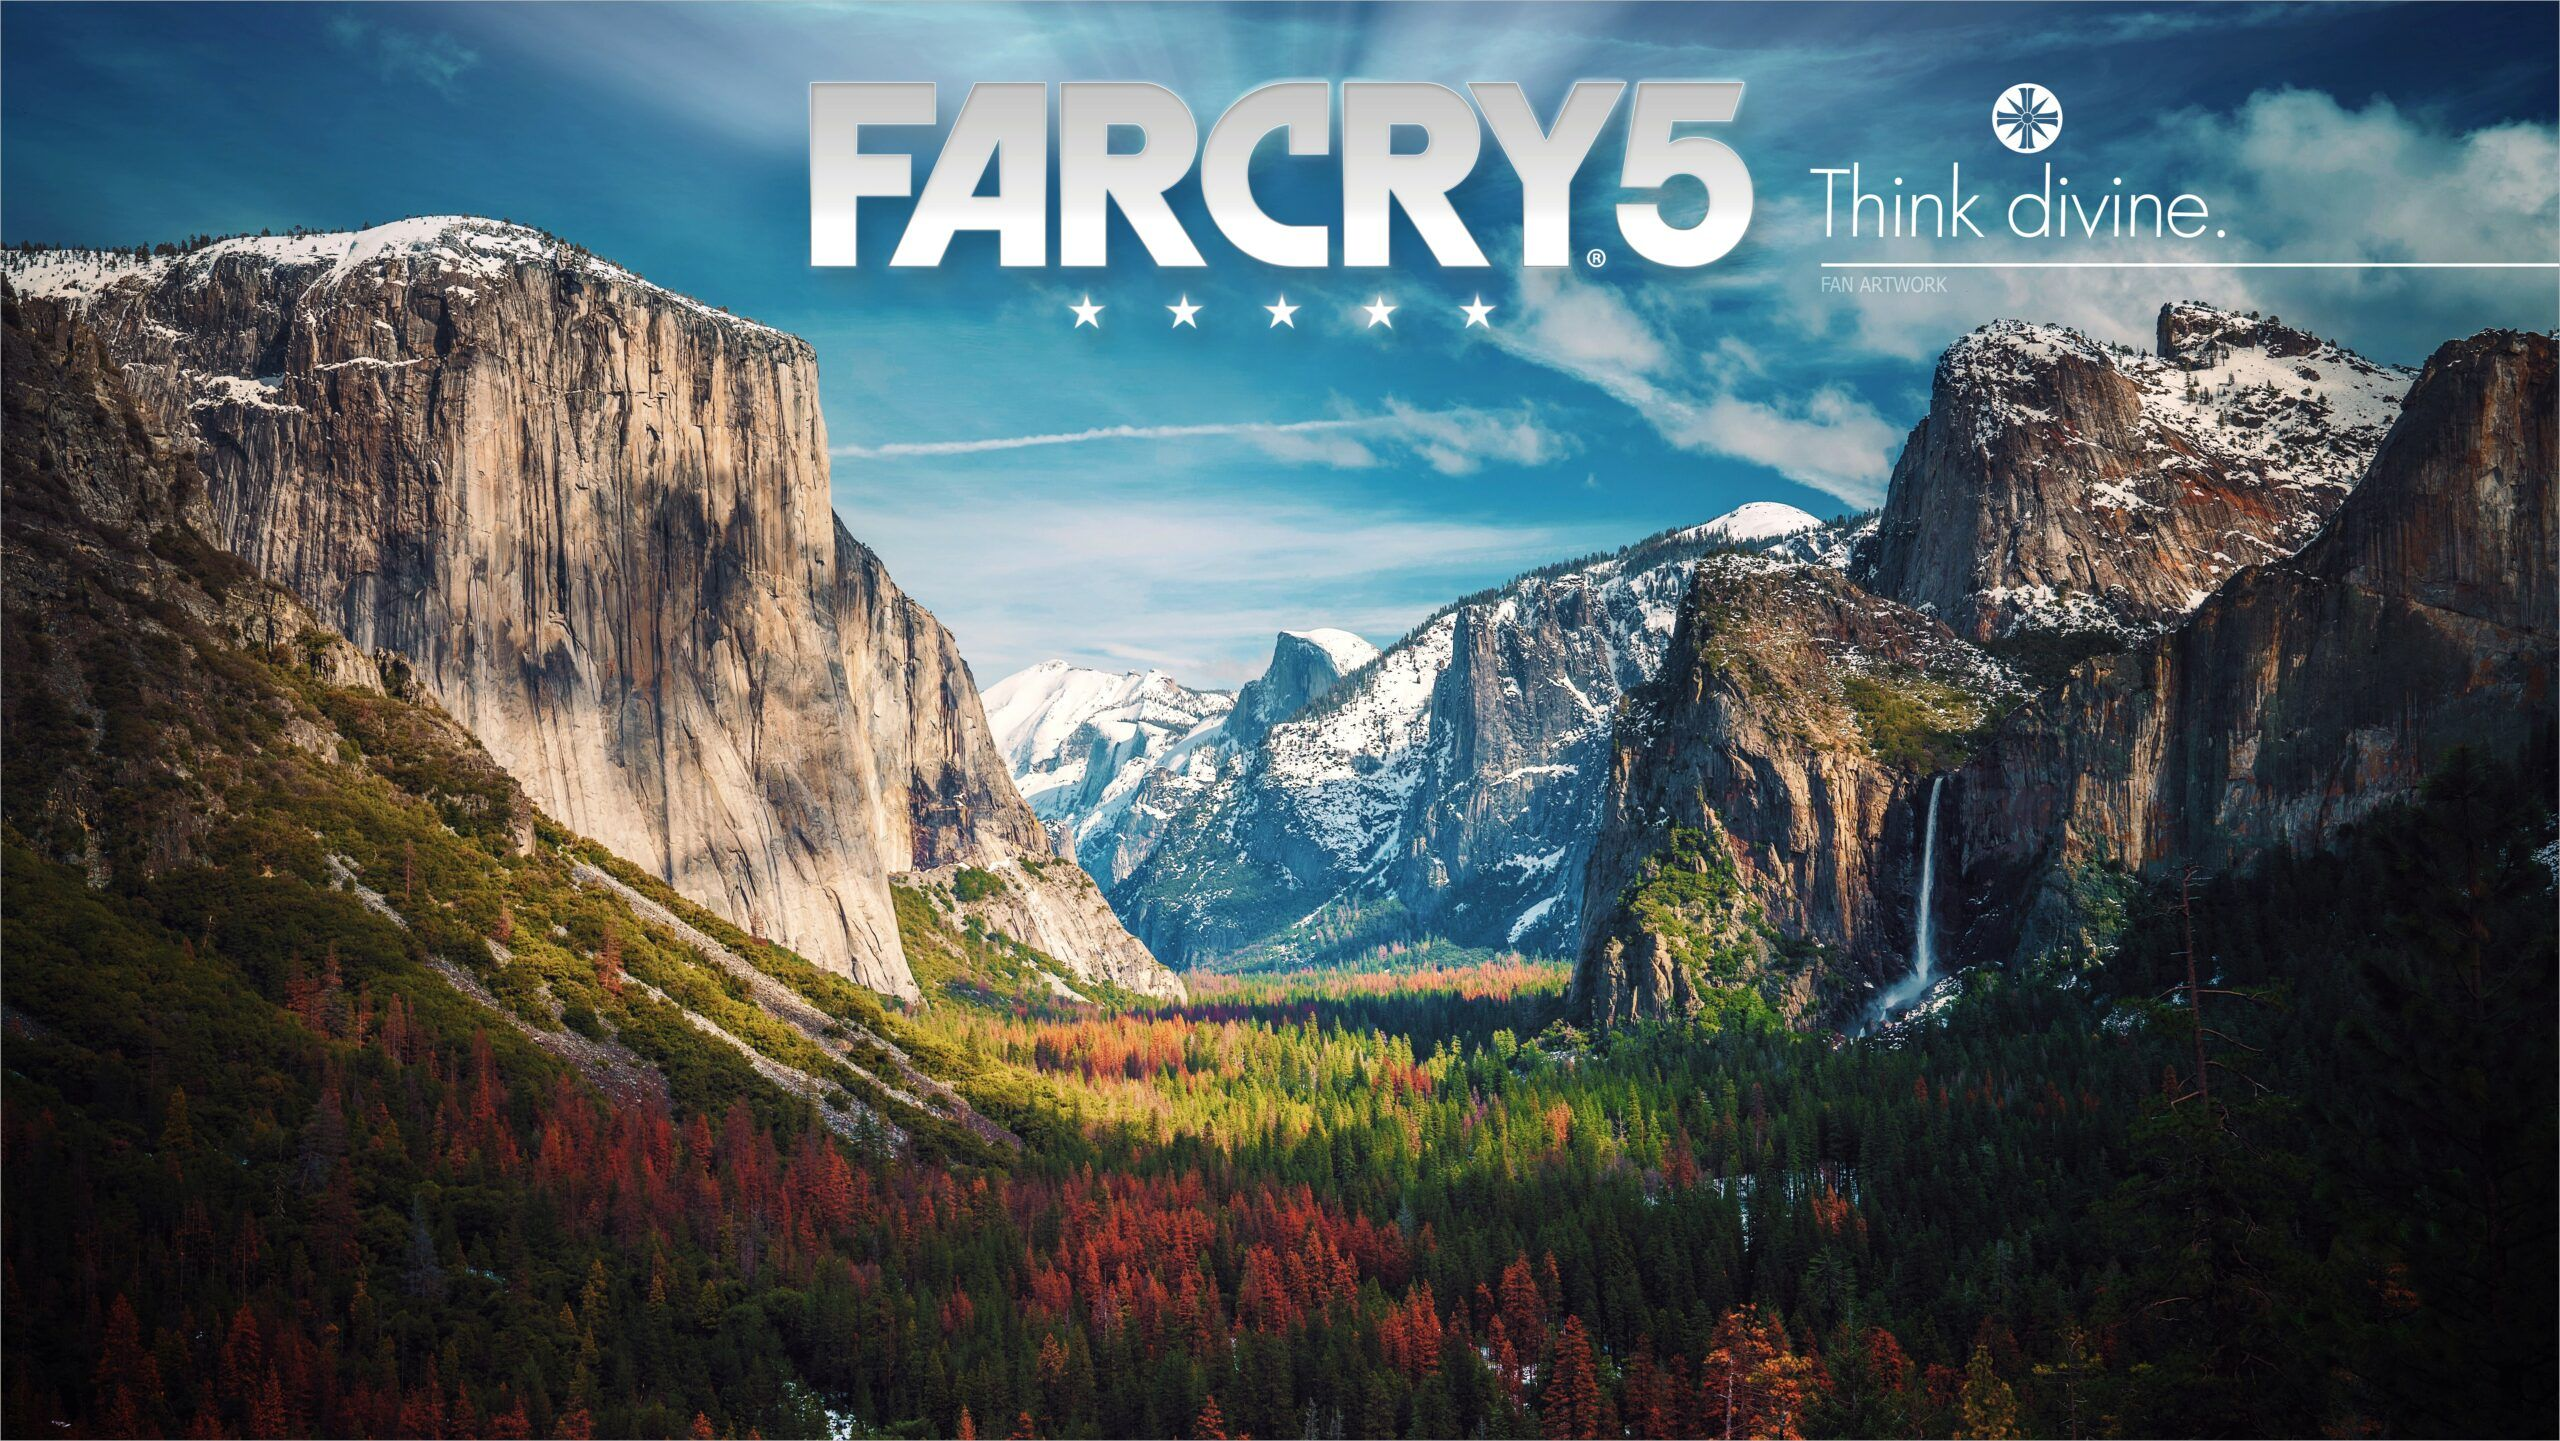 Far Cry 5 Wallpaper 4k In 2020 Digital Wallpaper Background Images Desktop Background Images